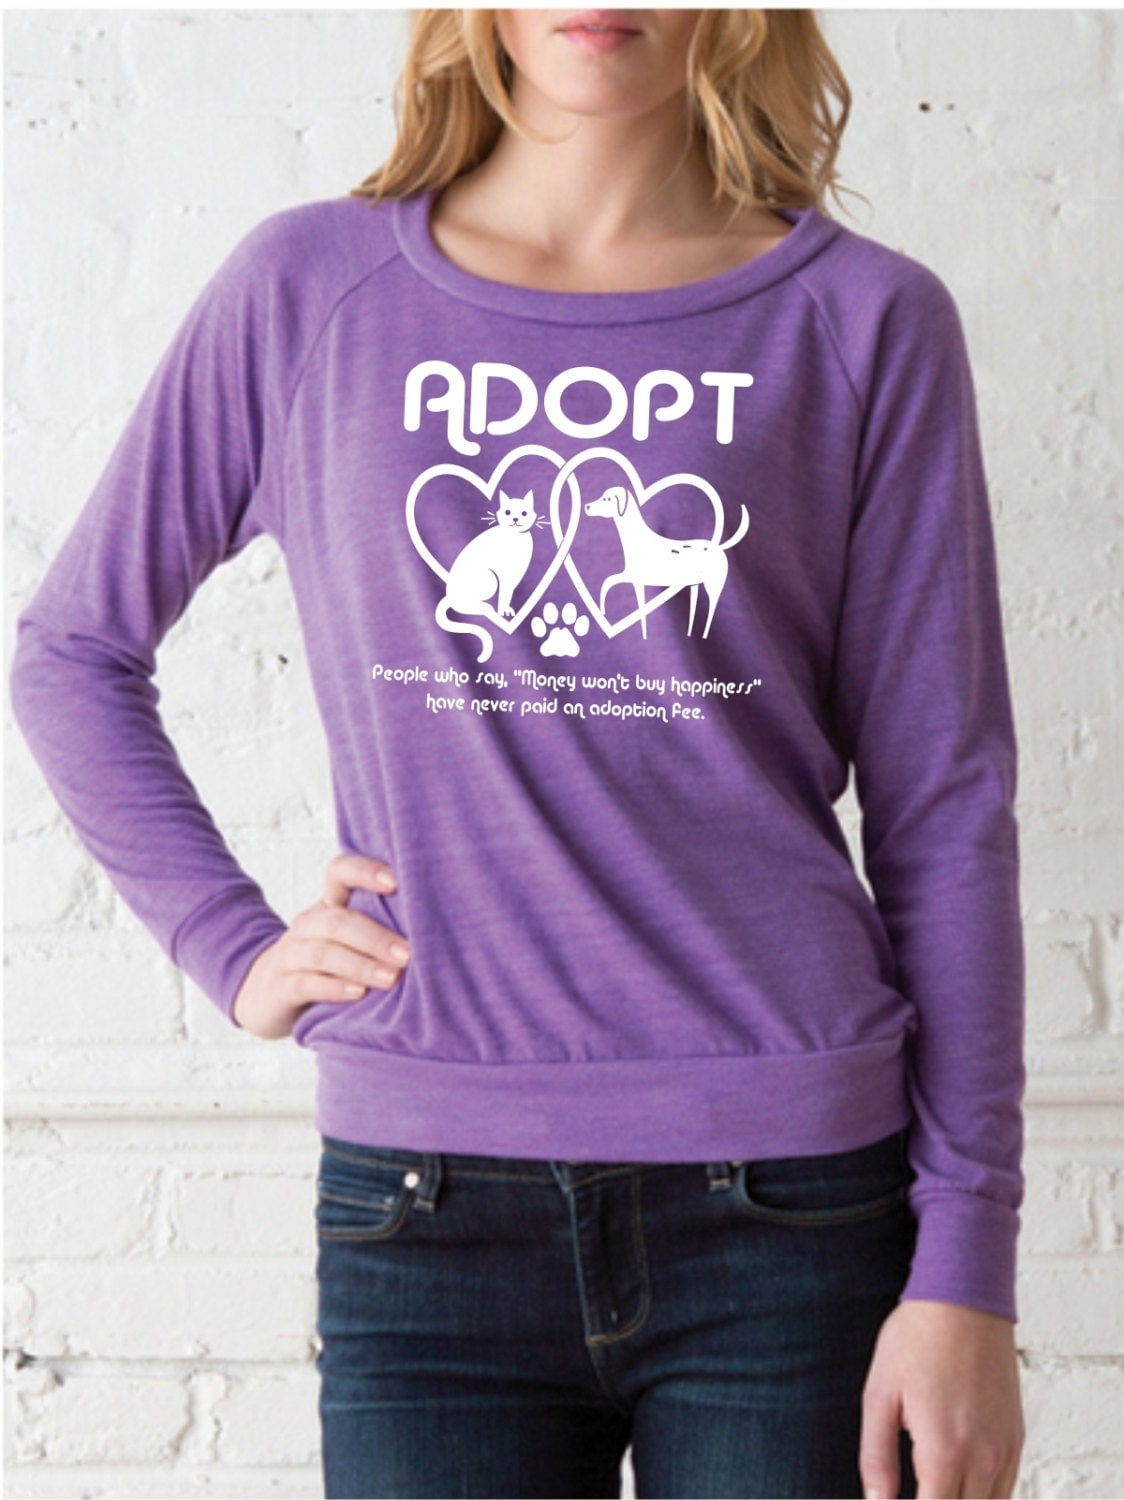 Animal Rescue shirt / Adopt tshirt / Slouchy Raglan Pullover / Radiant Orchid / Womens Long Sleeve / cat shirt / dog shirt / purple